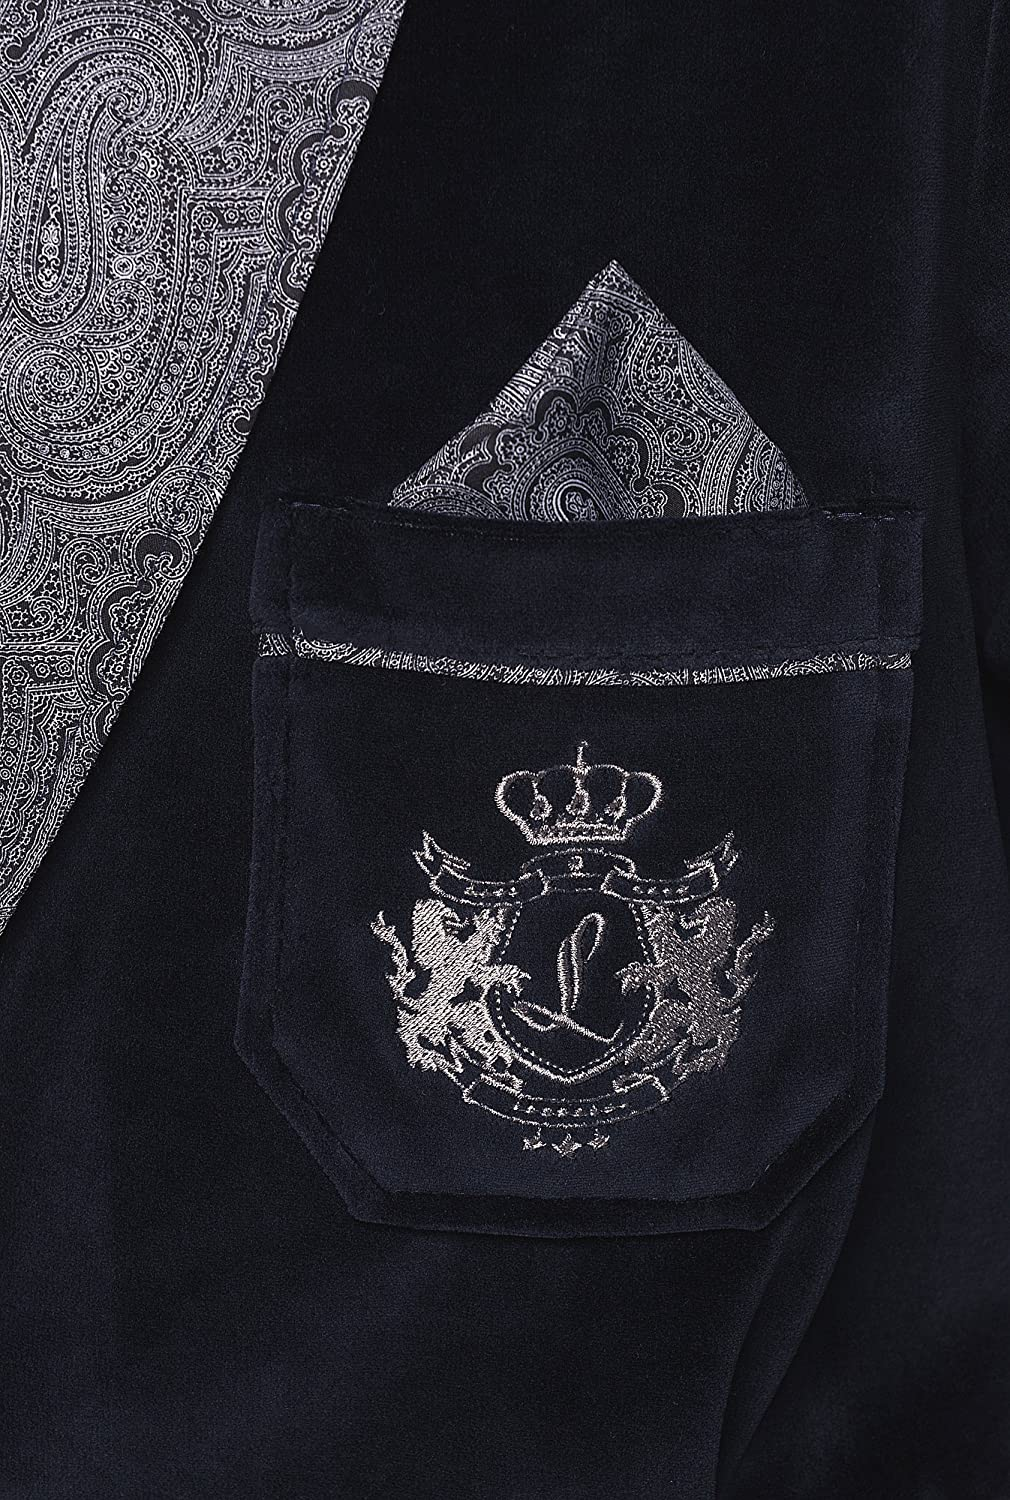 Smoking Jacket Revise RE-111 Short Dressing Gown with Embroidered Pocket